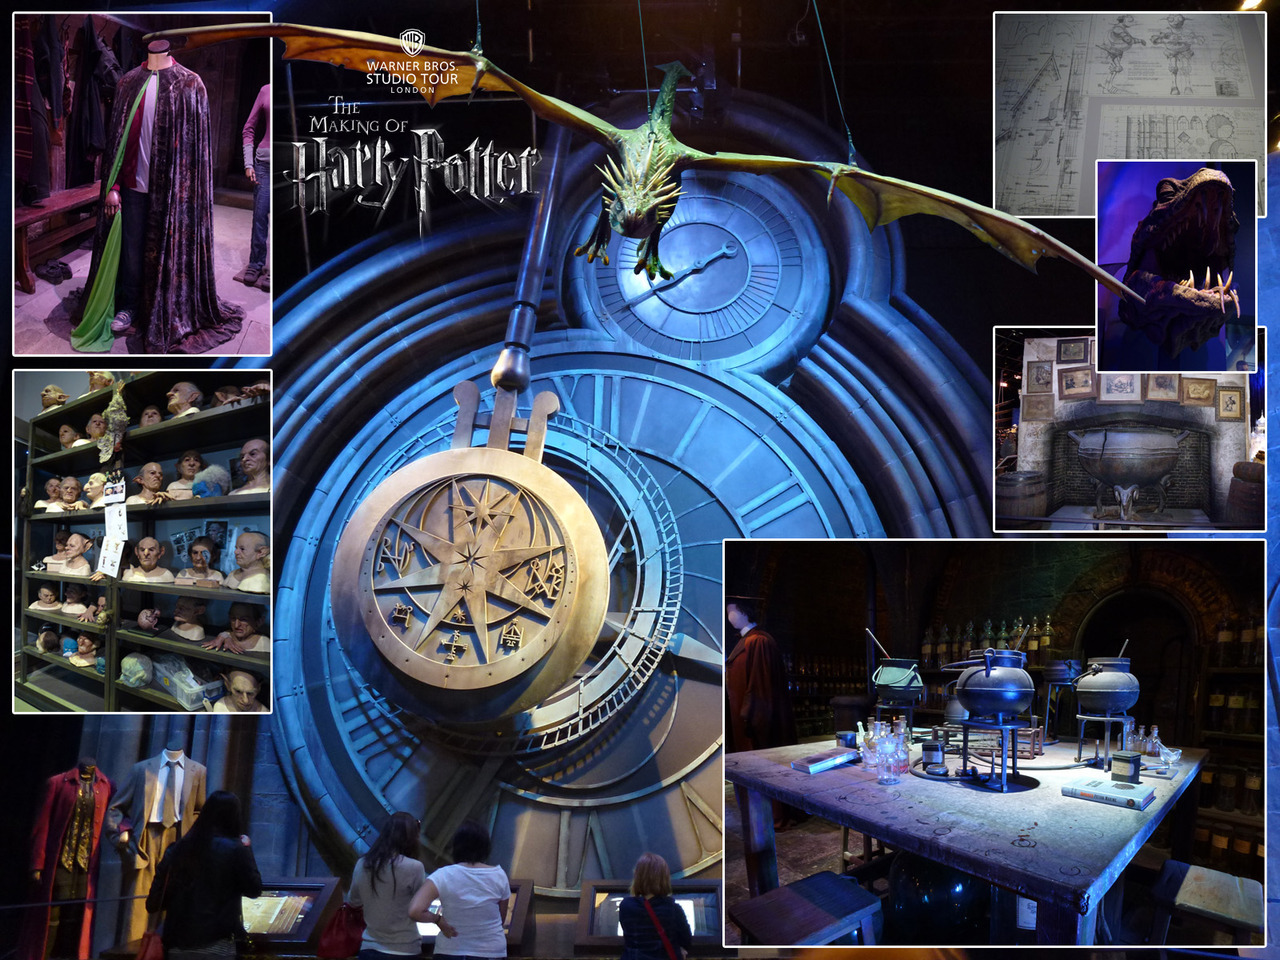 Photos from the Warner Bros Studio Tour - The Making of Harry Potter. Main: Hogwarts Clockface. Clockwise from top left: Invisibility Cloak costume with greenscreen interior lining. Suspended dragon model. Technical drawings of sets and props. Lifesize Basilisk Head. The Leaky Cauldron. Potions classroom. Goblin prosthetics.